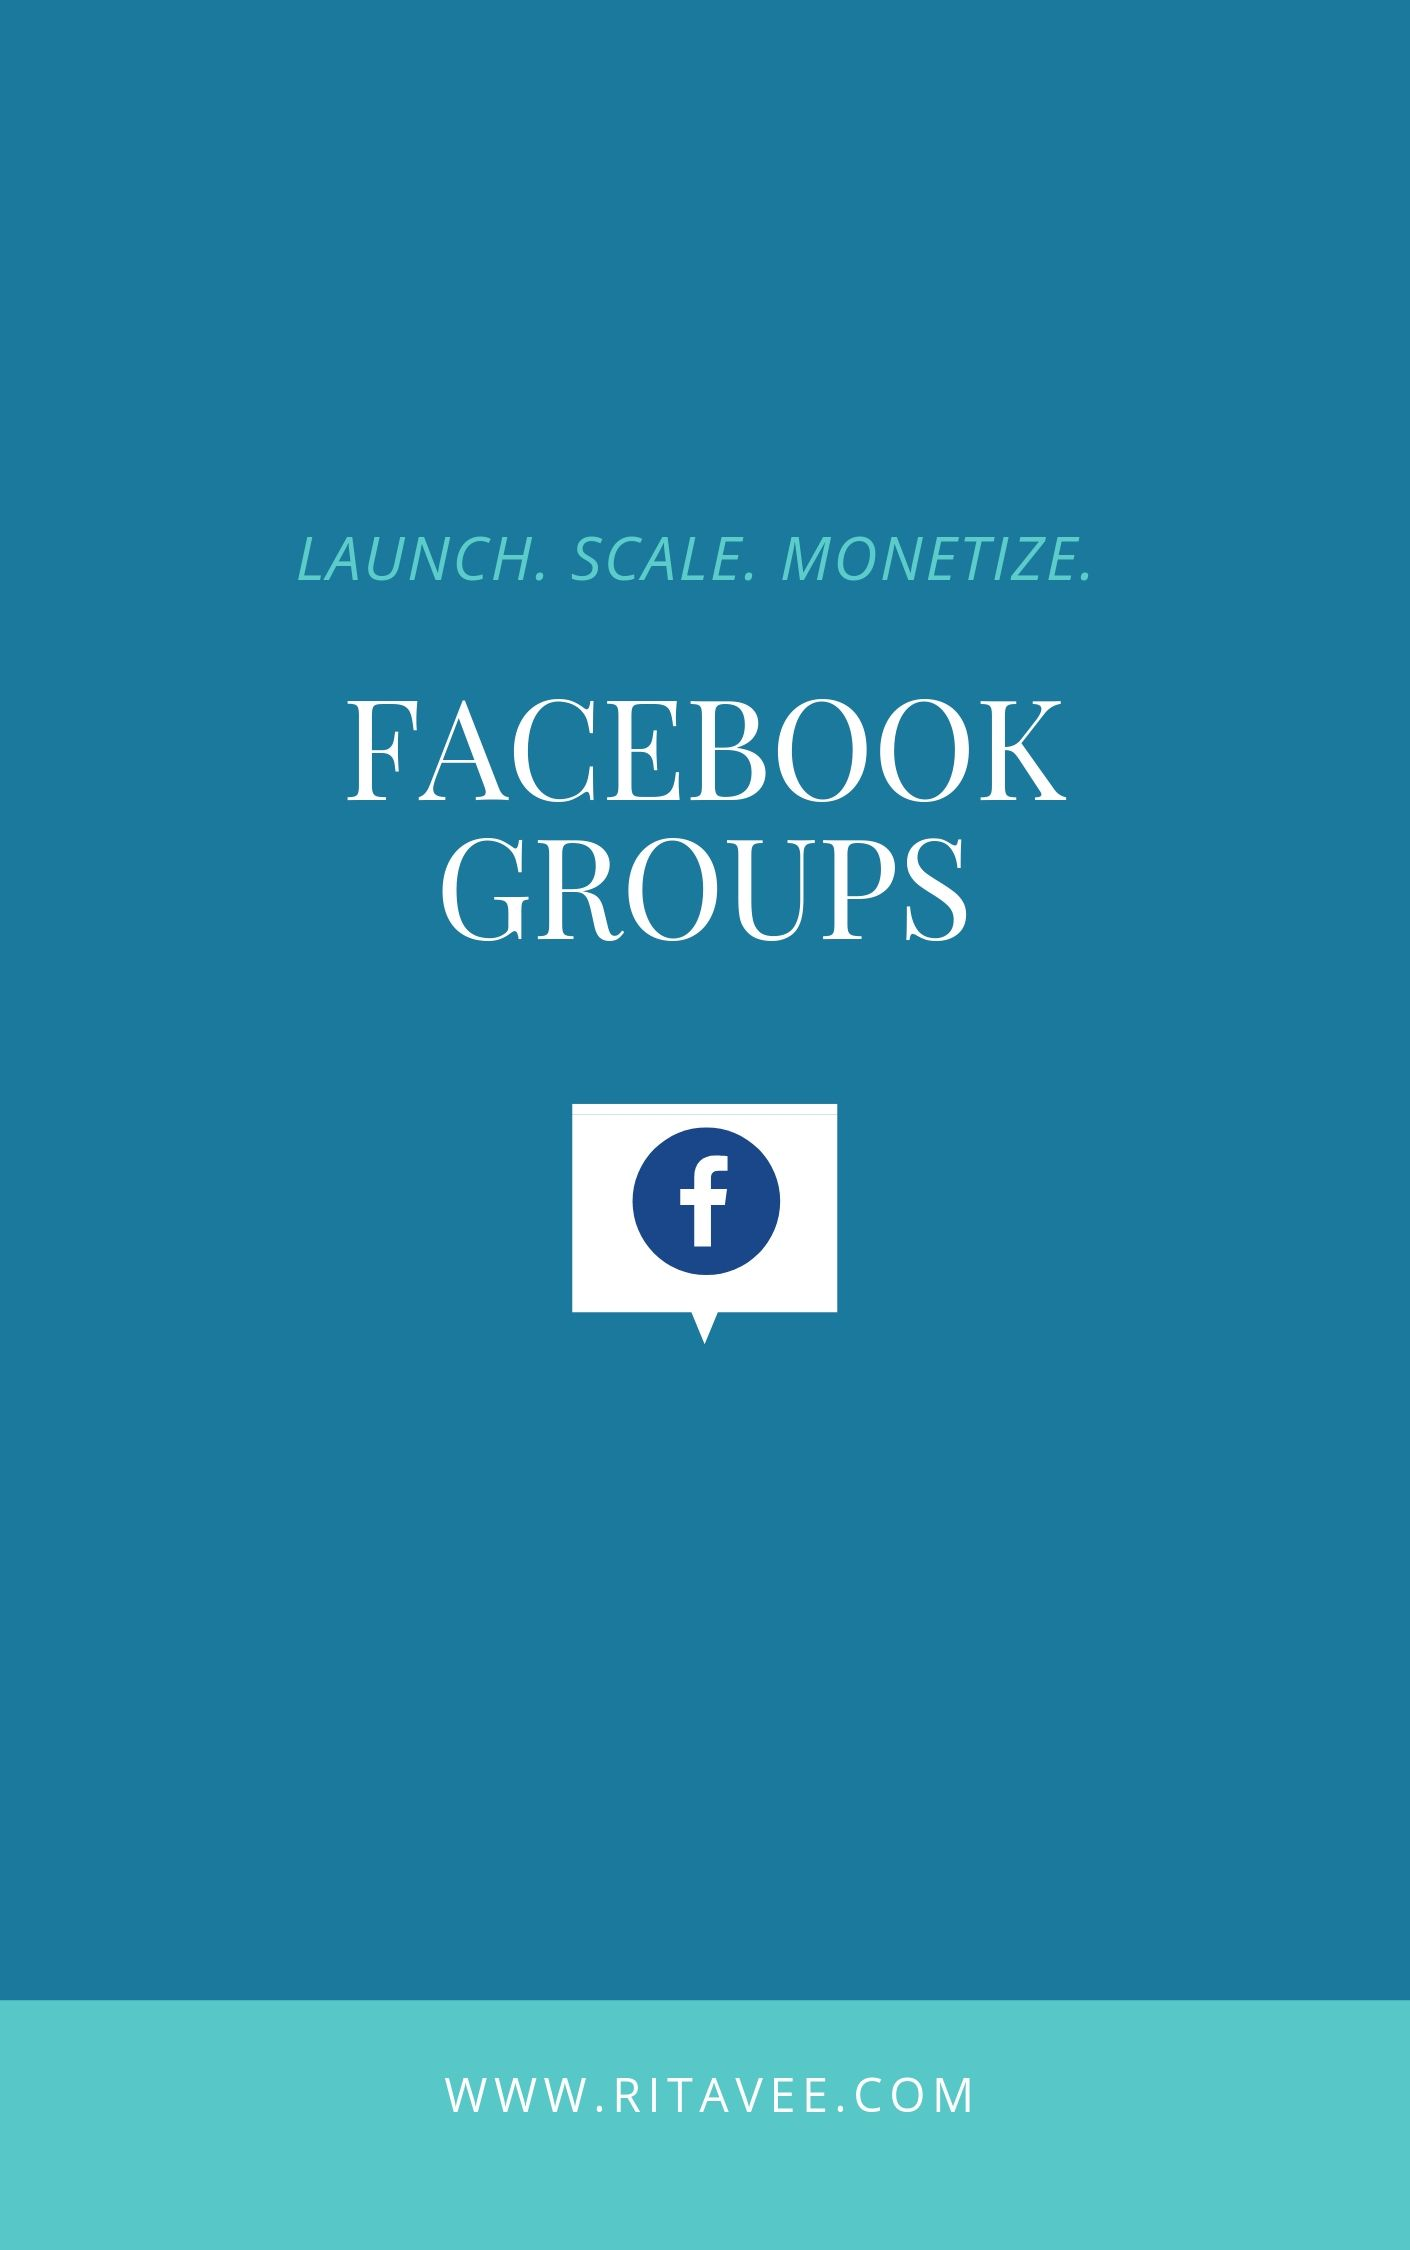 Learn how to optimize and monetize your group - with my easy to follow Facebook Group Workbook